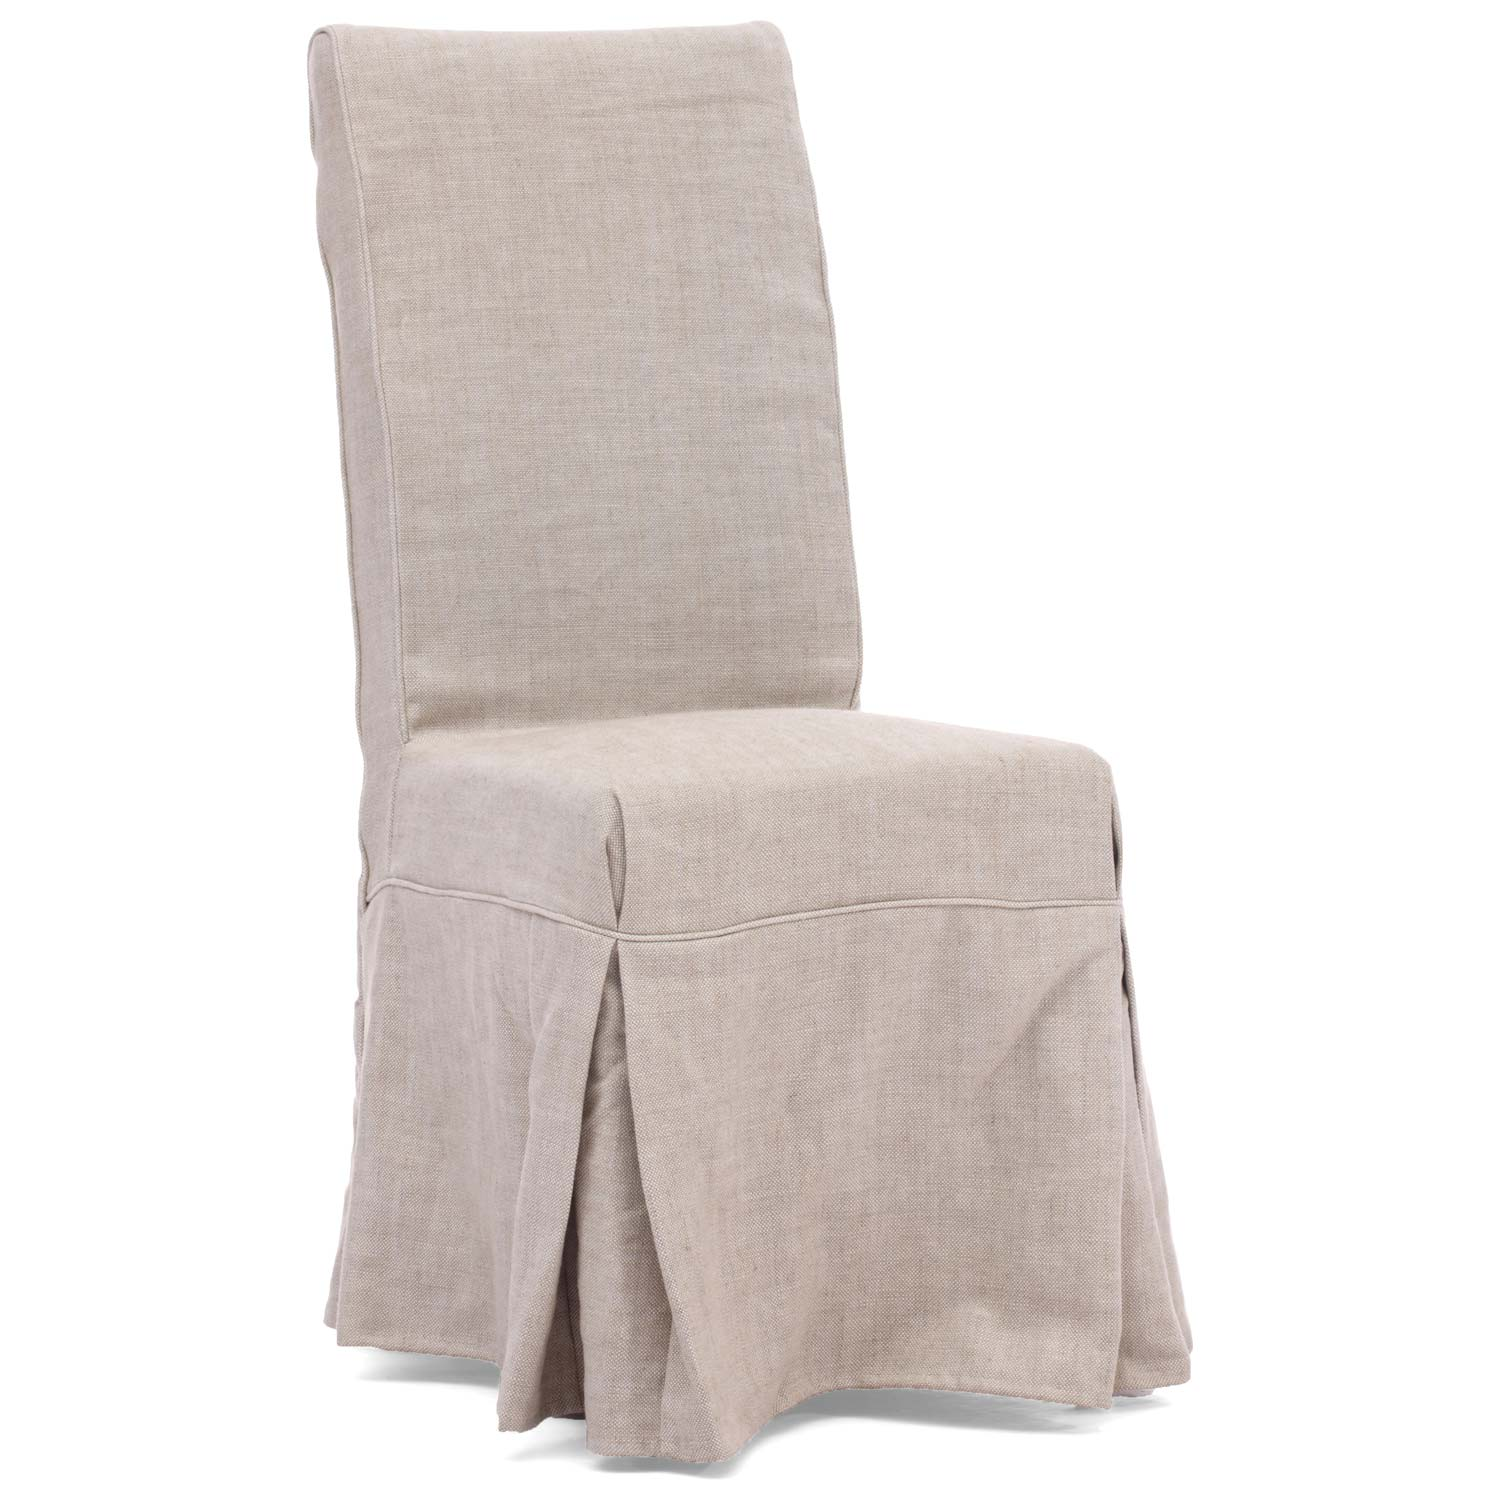 Dog Patch Chair - Beige Linen Slipcover - ZM-98078